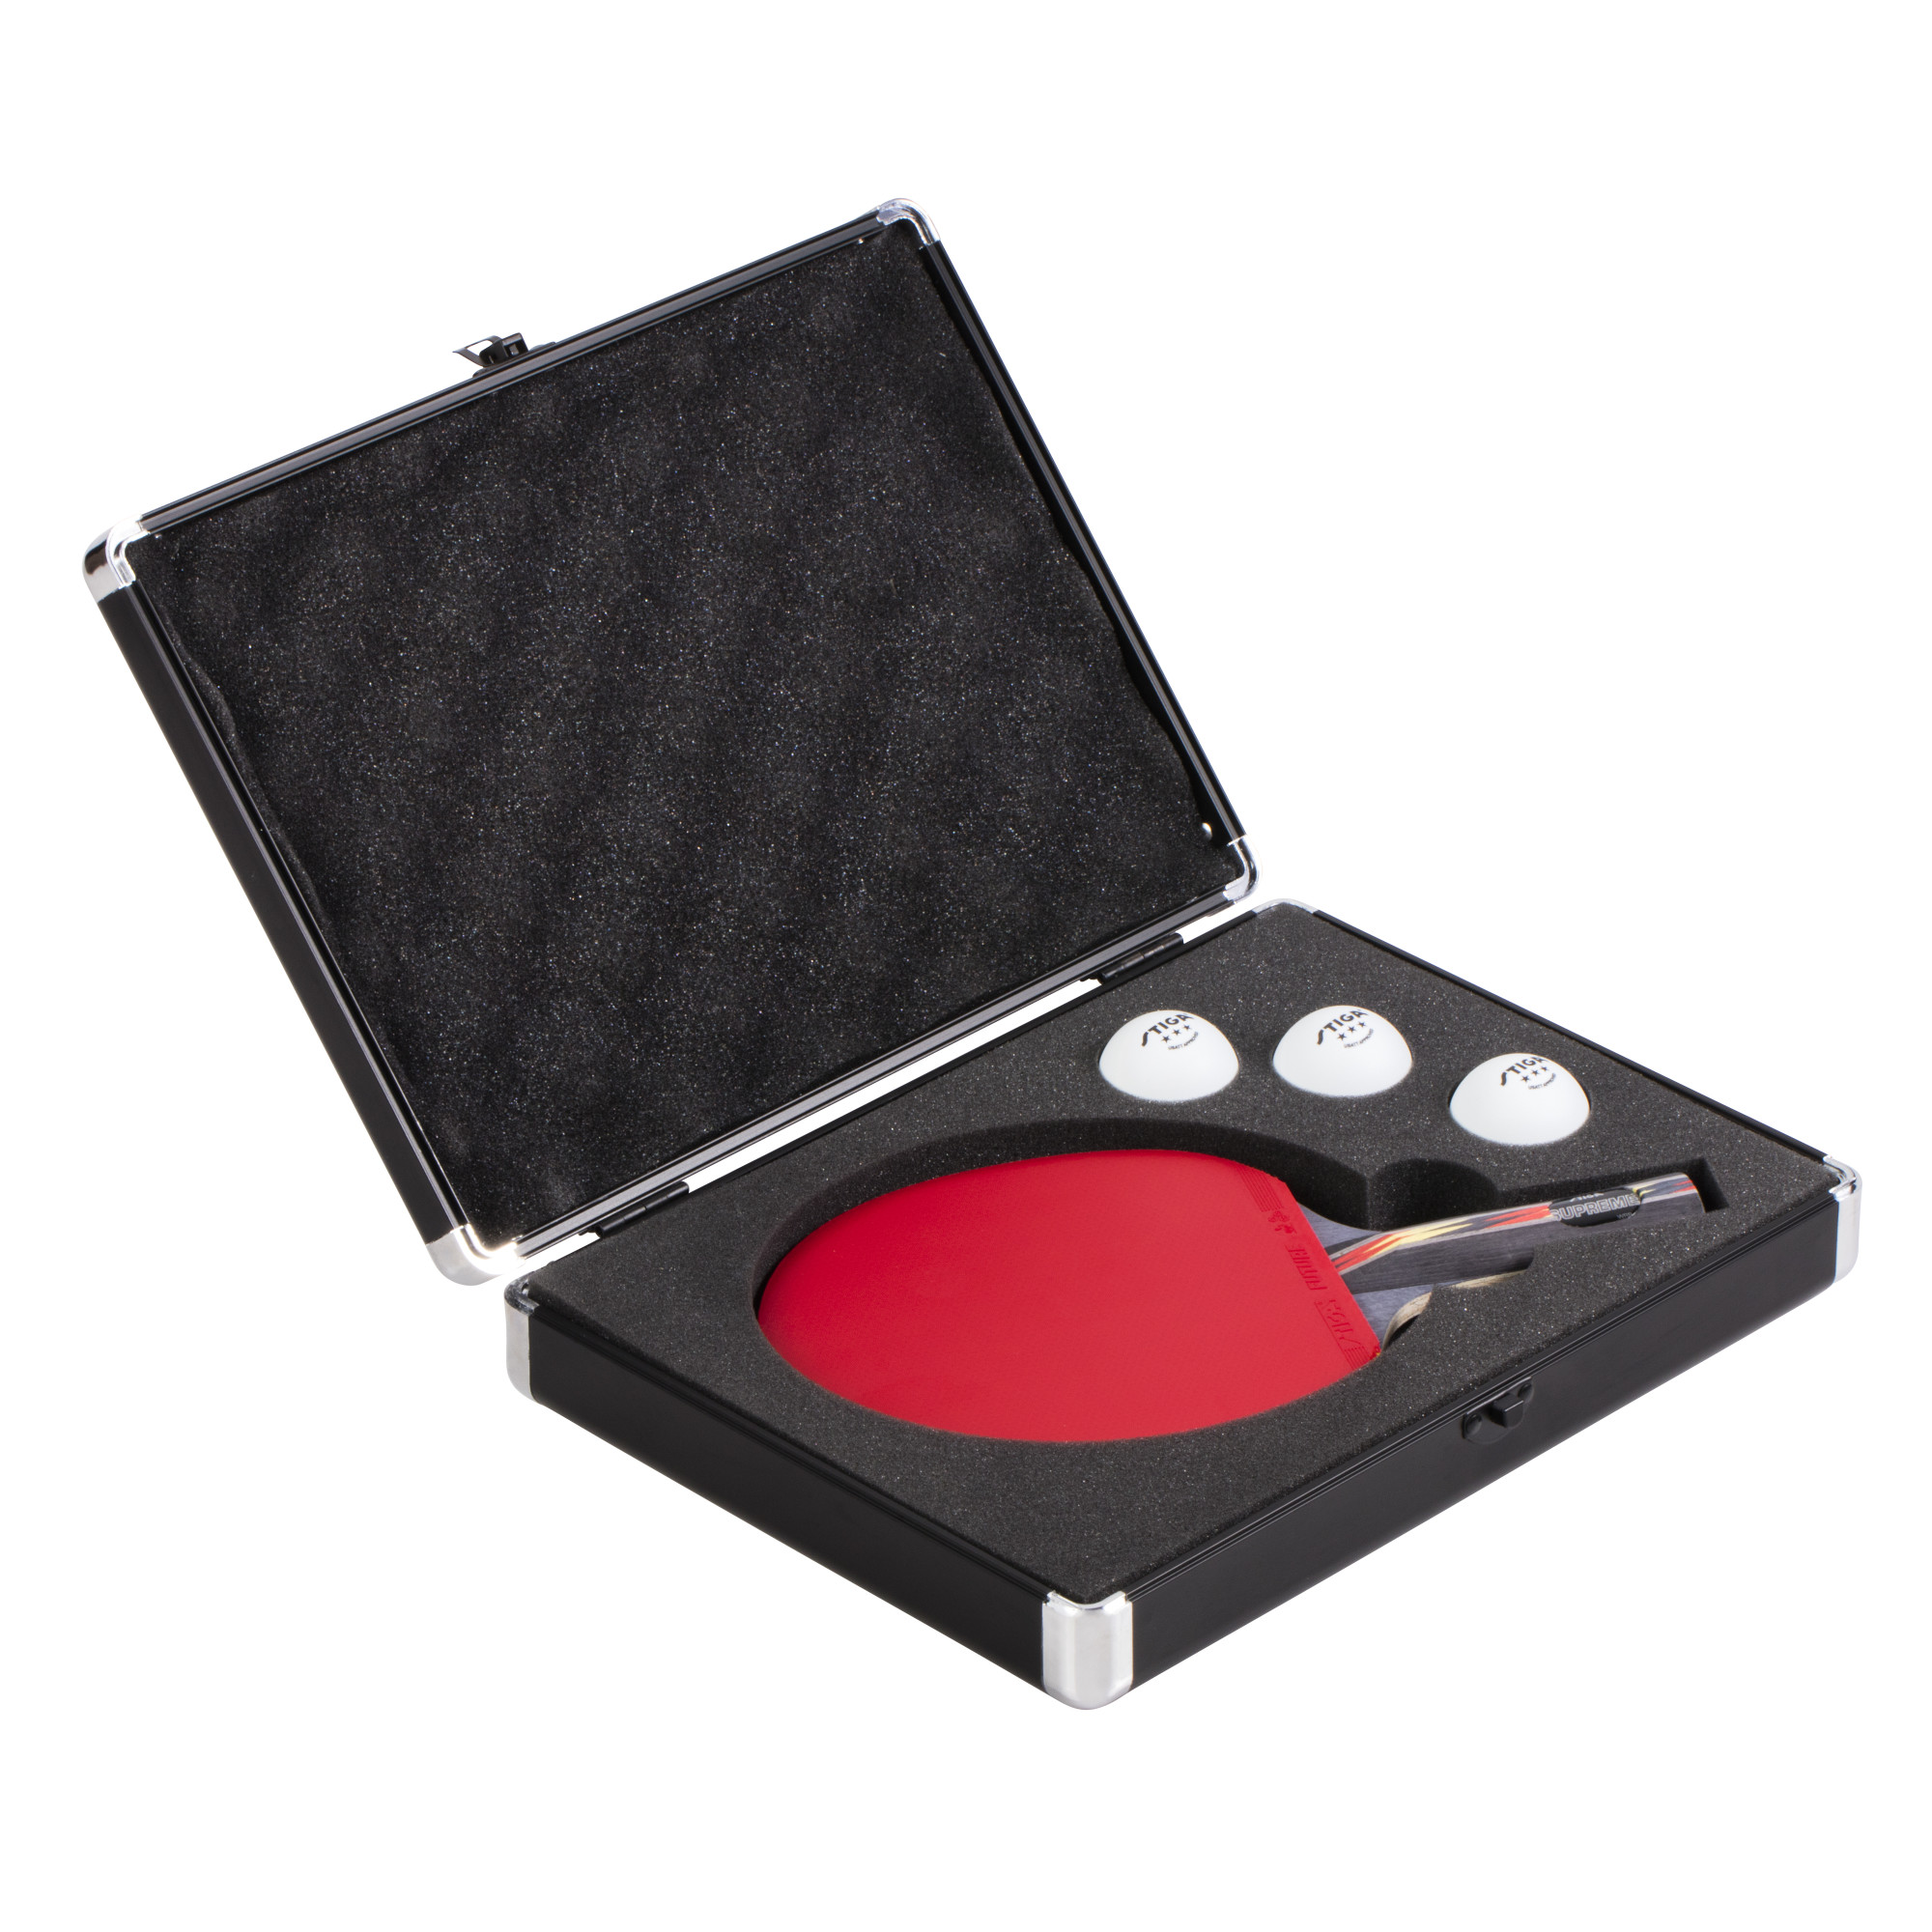 STIGA Aluminum Table Tennis Racket Hard Case Transports and Stores One Racket and Three Balls